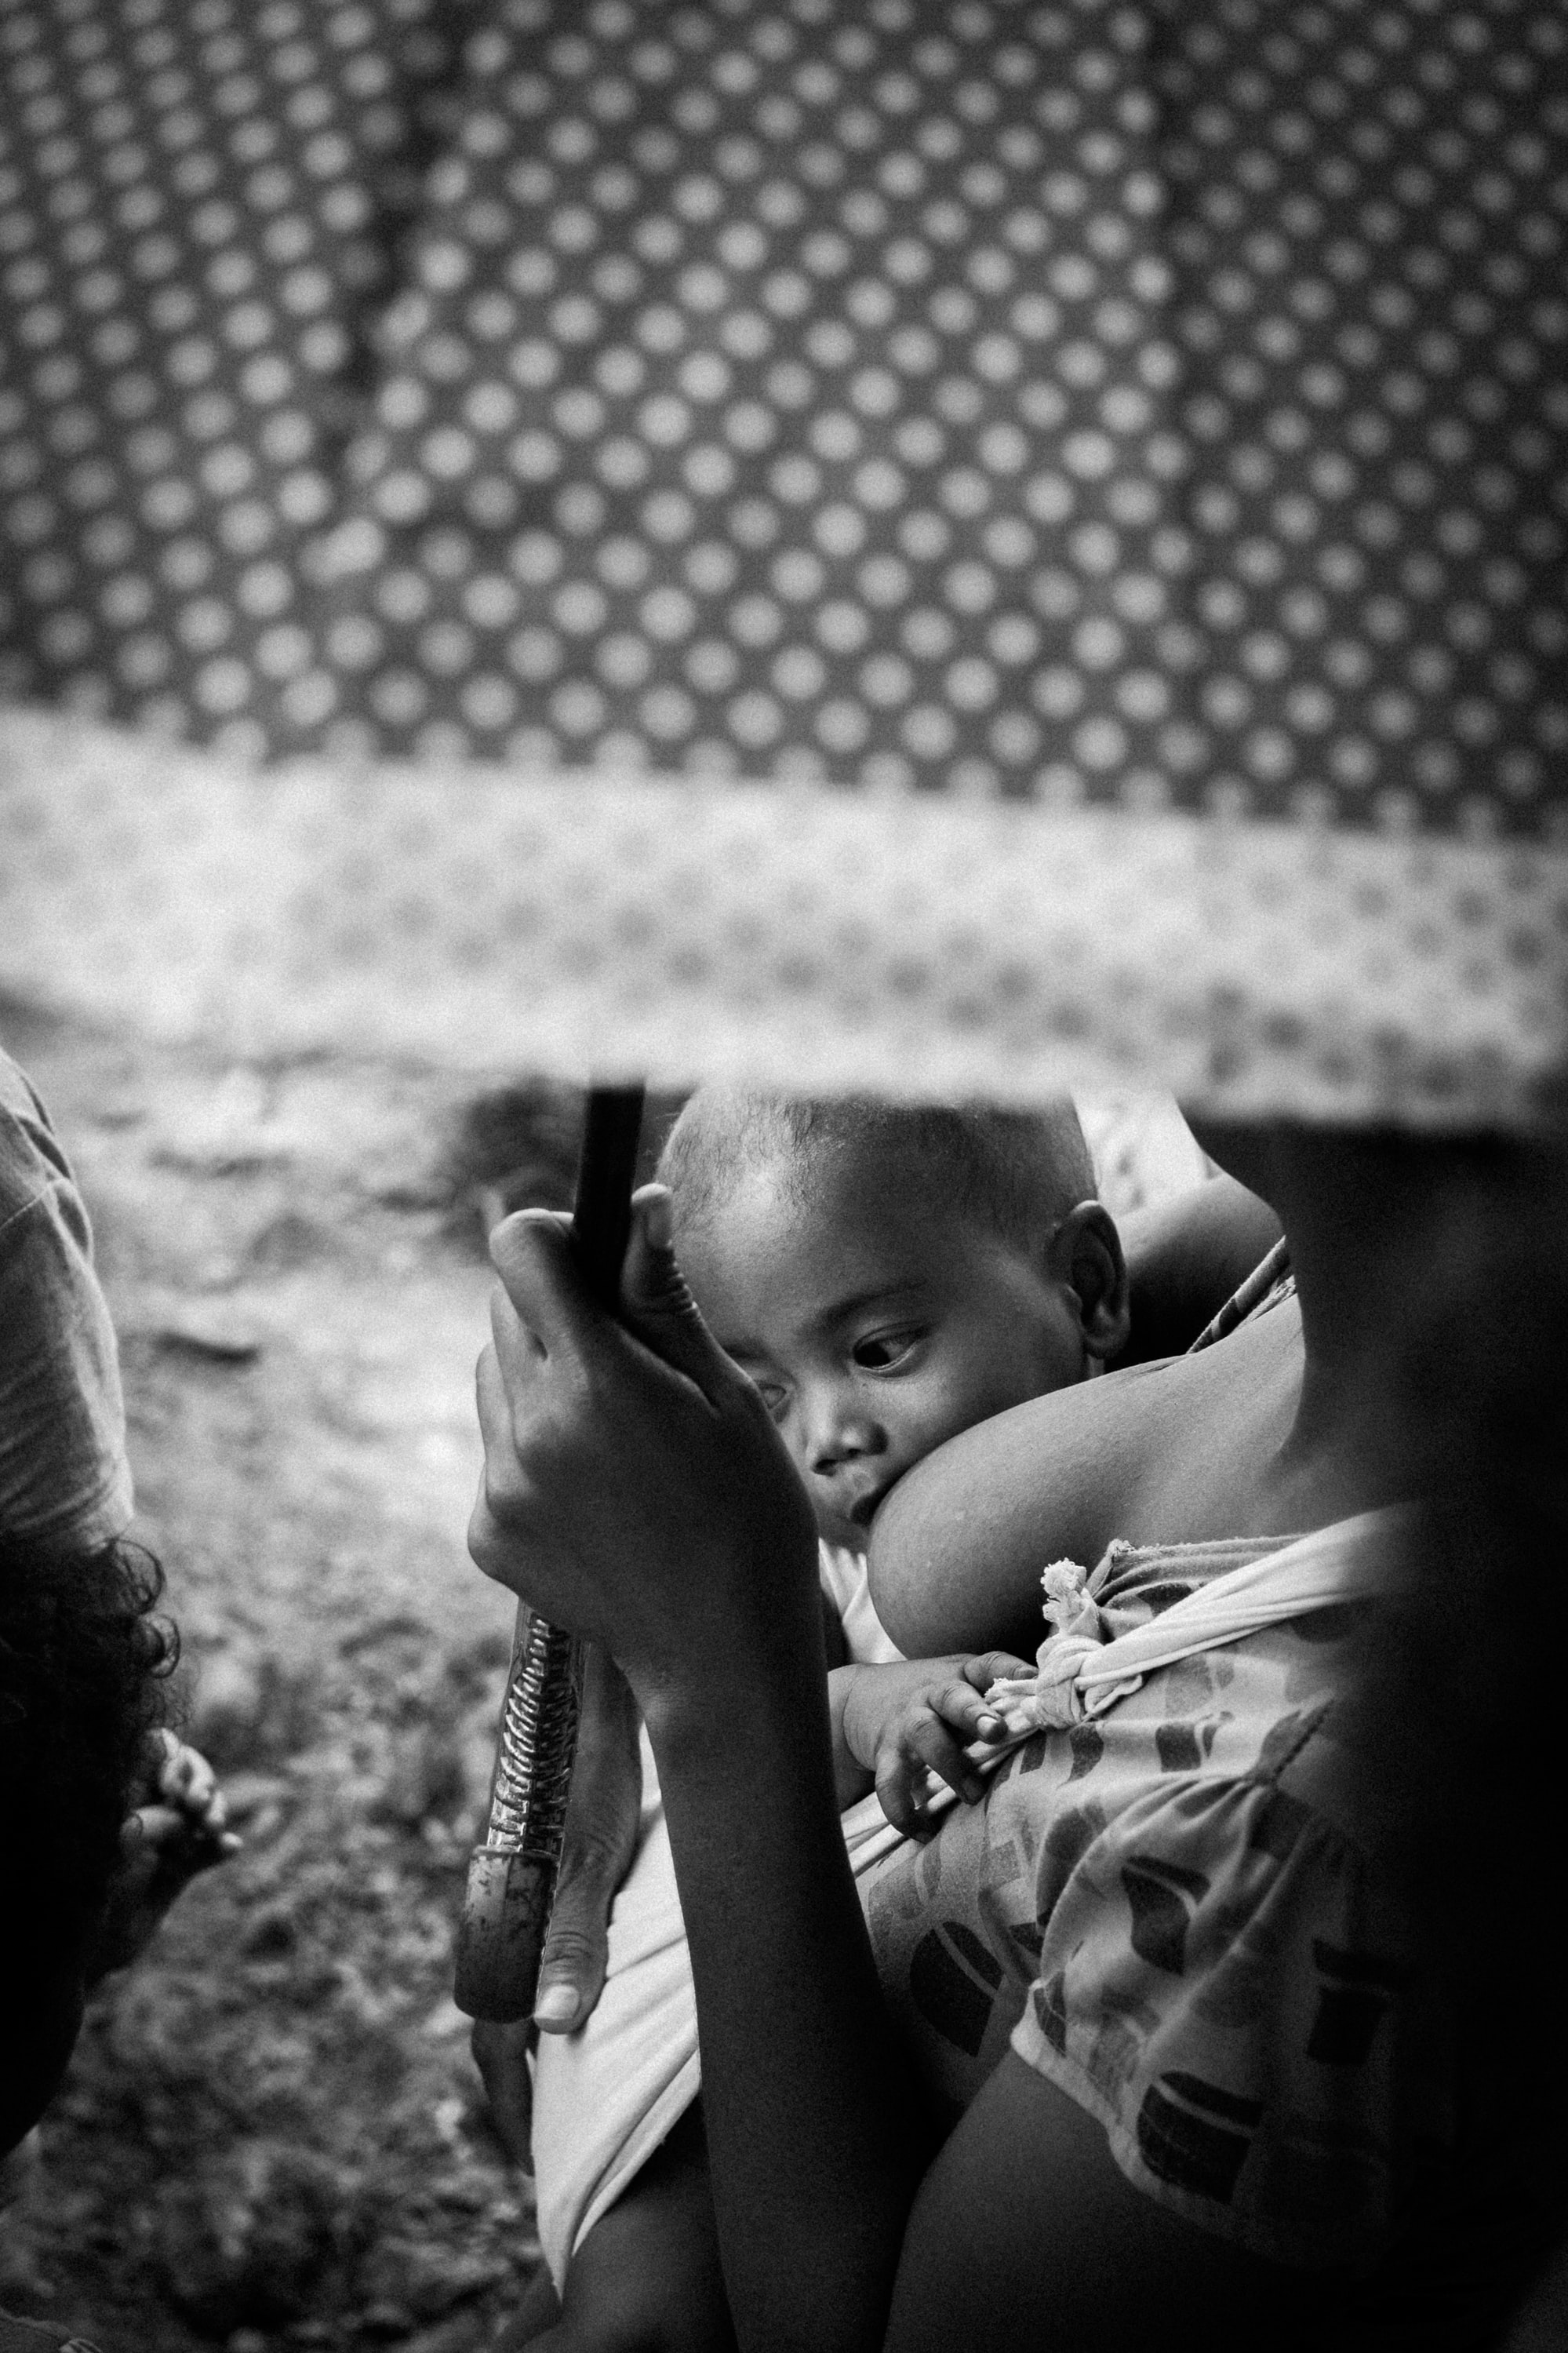 grayscale photo of breastfeeding mother with umbrella